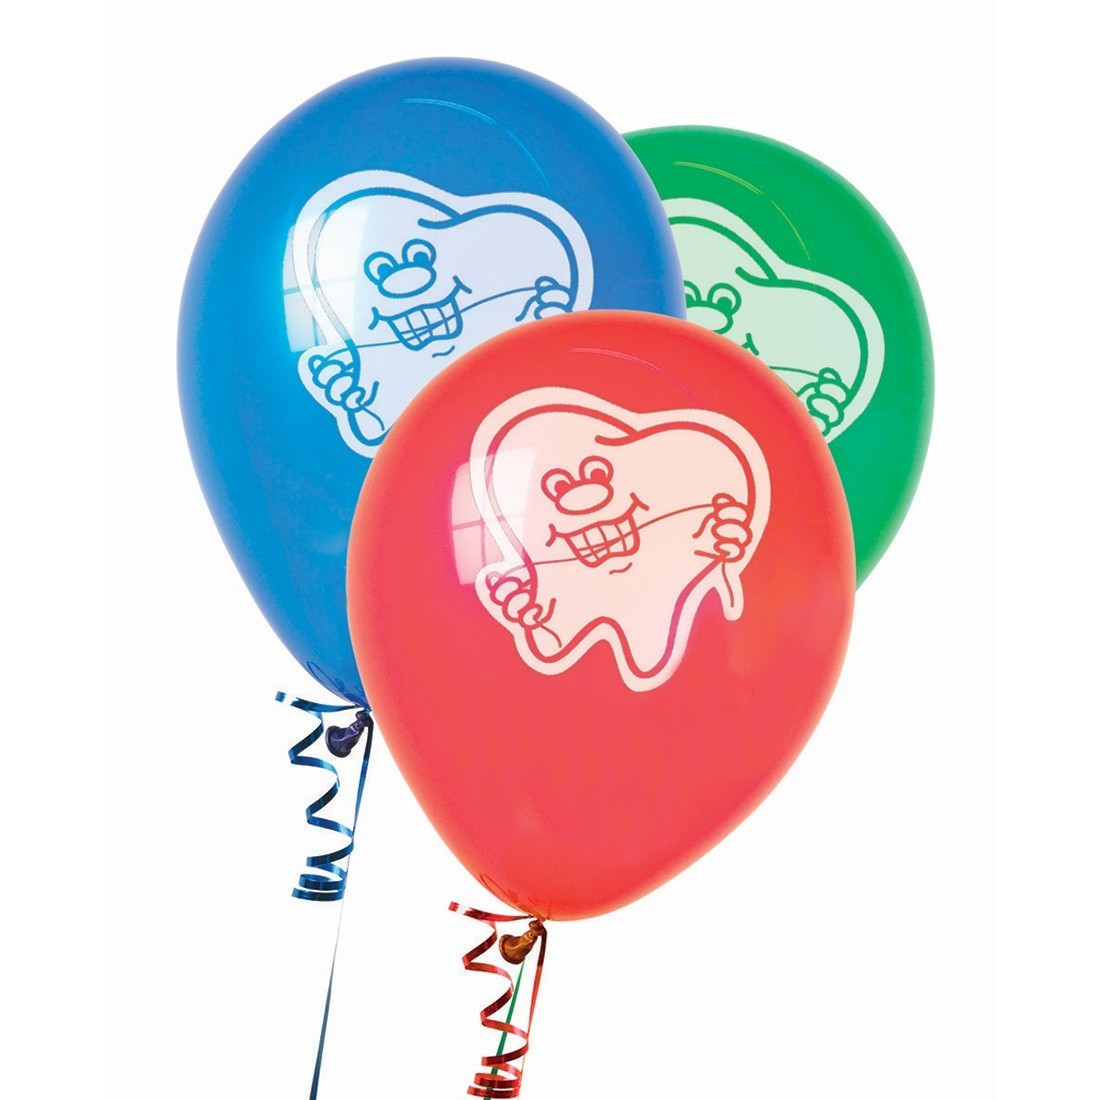 Tooth with Floss Latex Balloons [image]